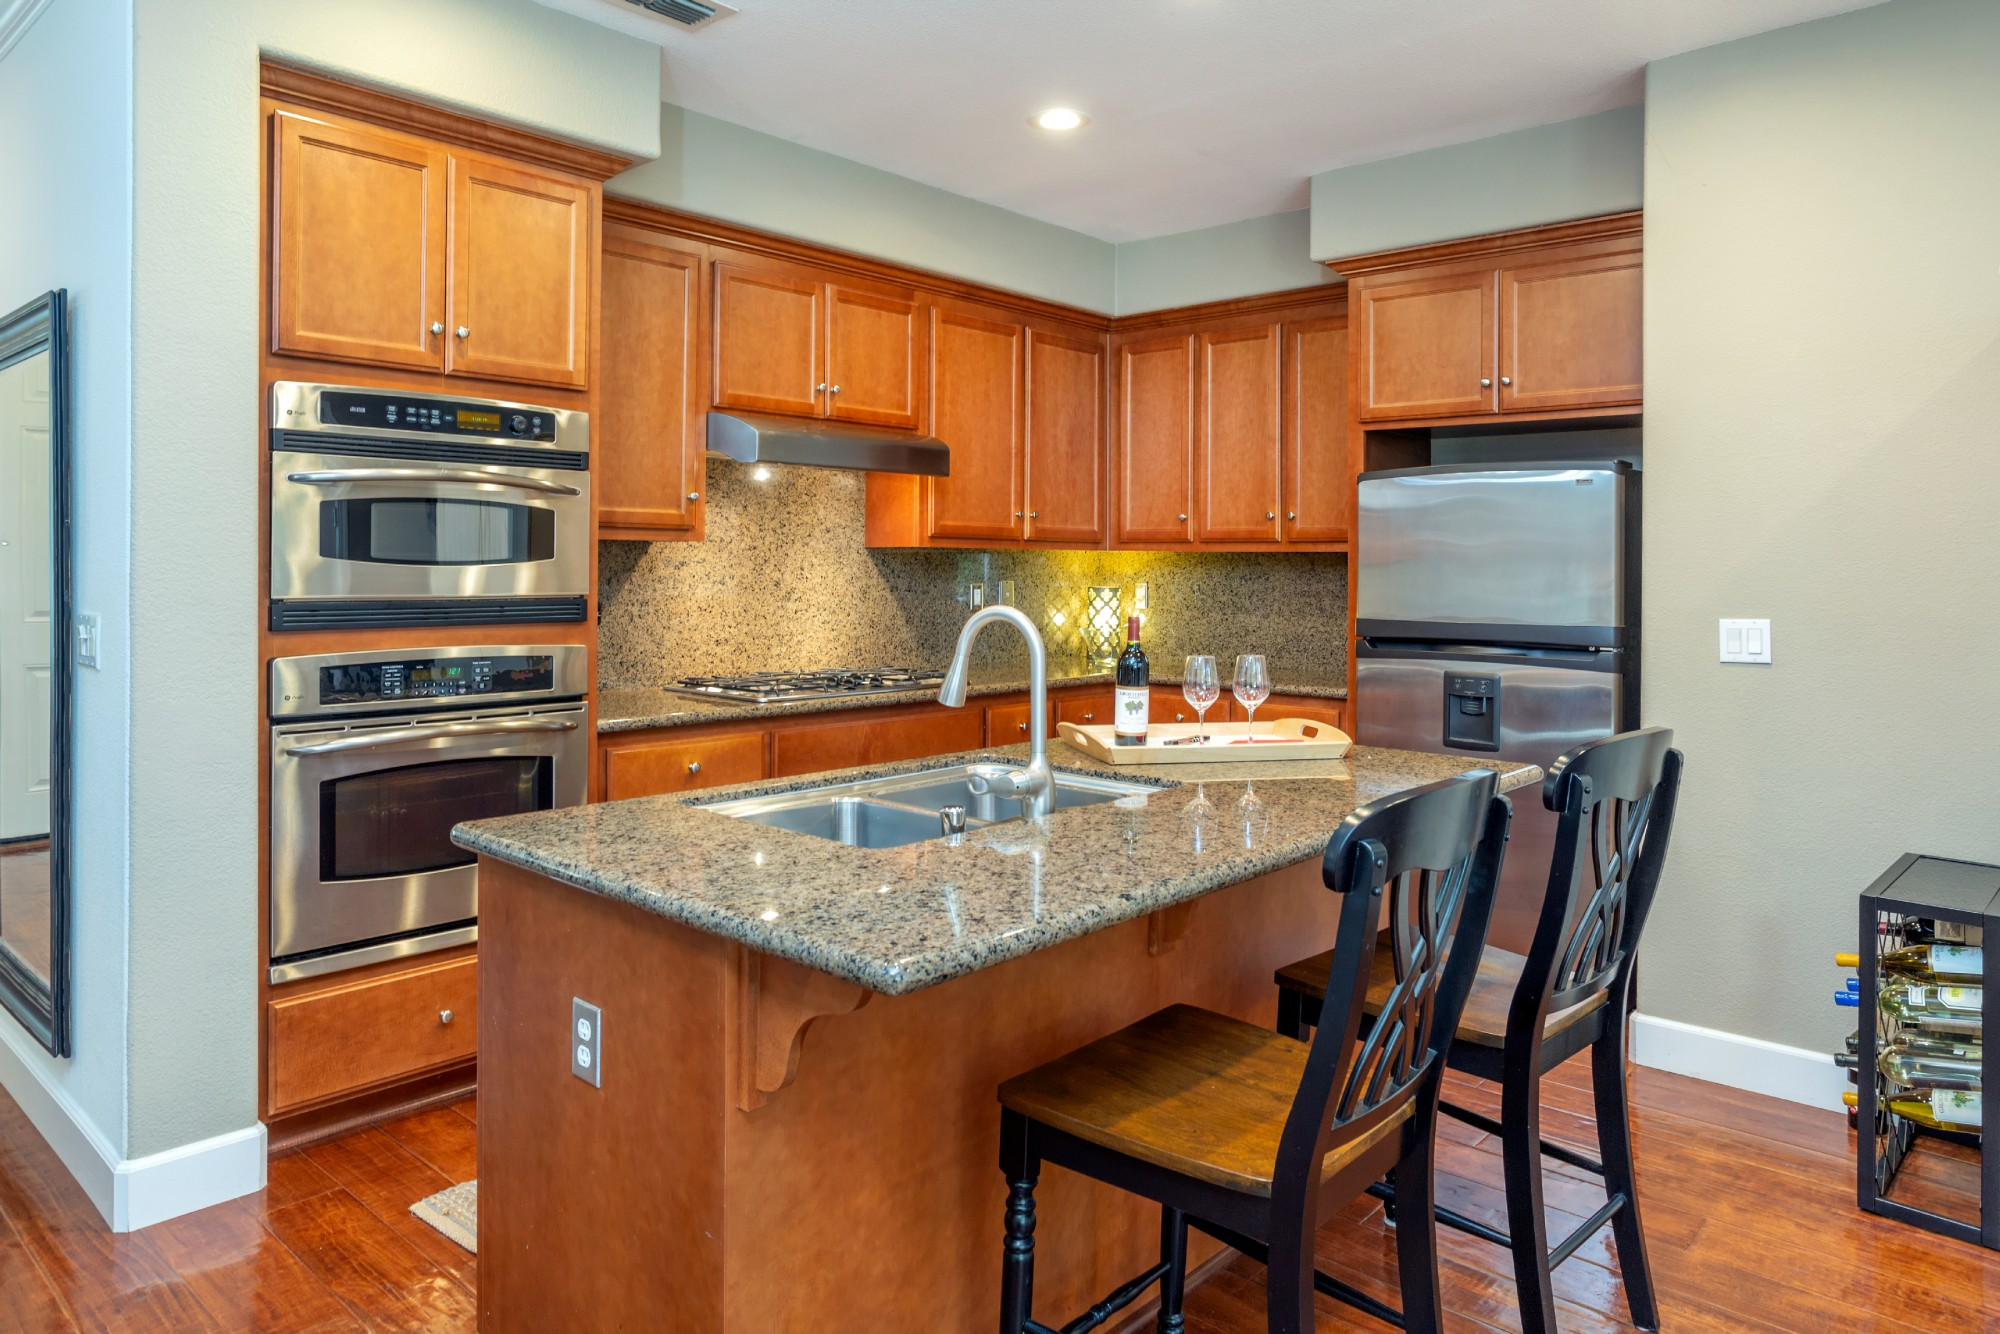 Kitchen amenities include built-in stainless oven and microwave, gas stove top and dishwasher.  Lovely granite slab graces the counters and island